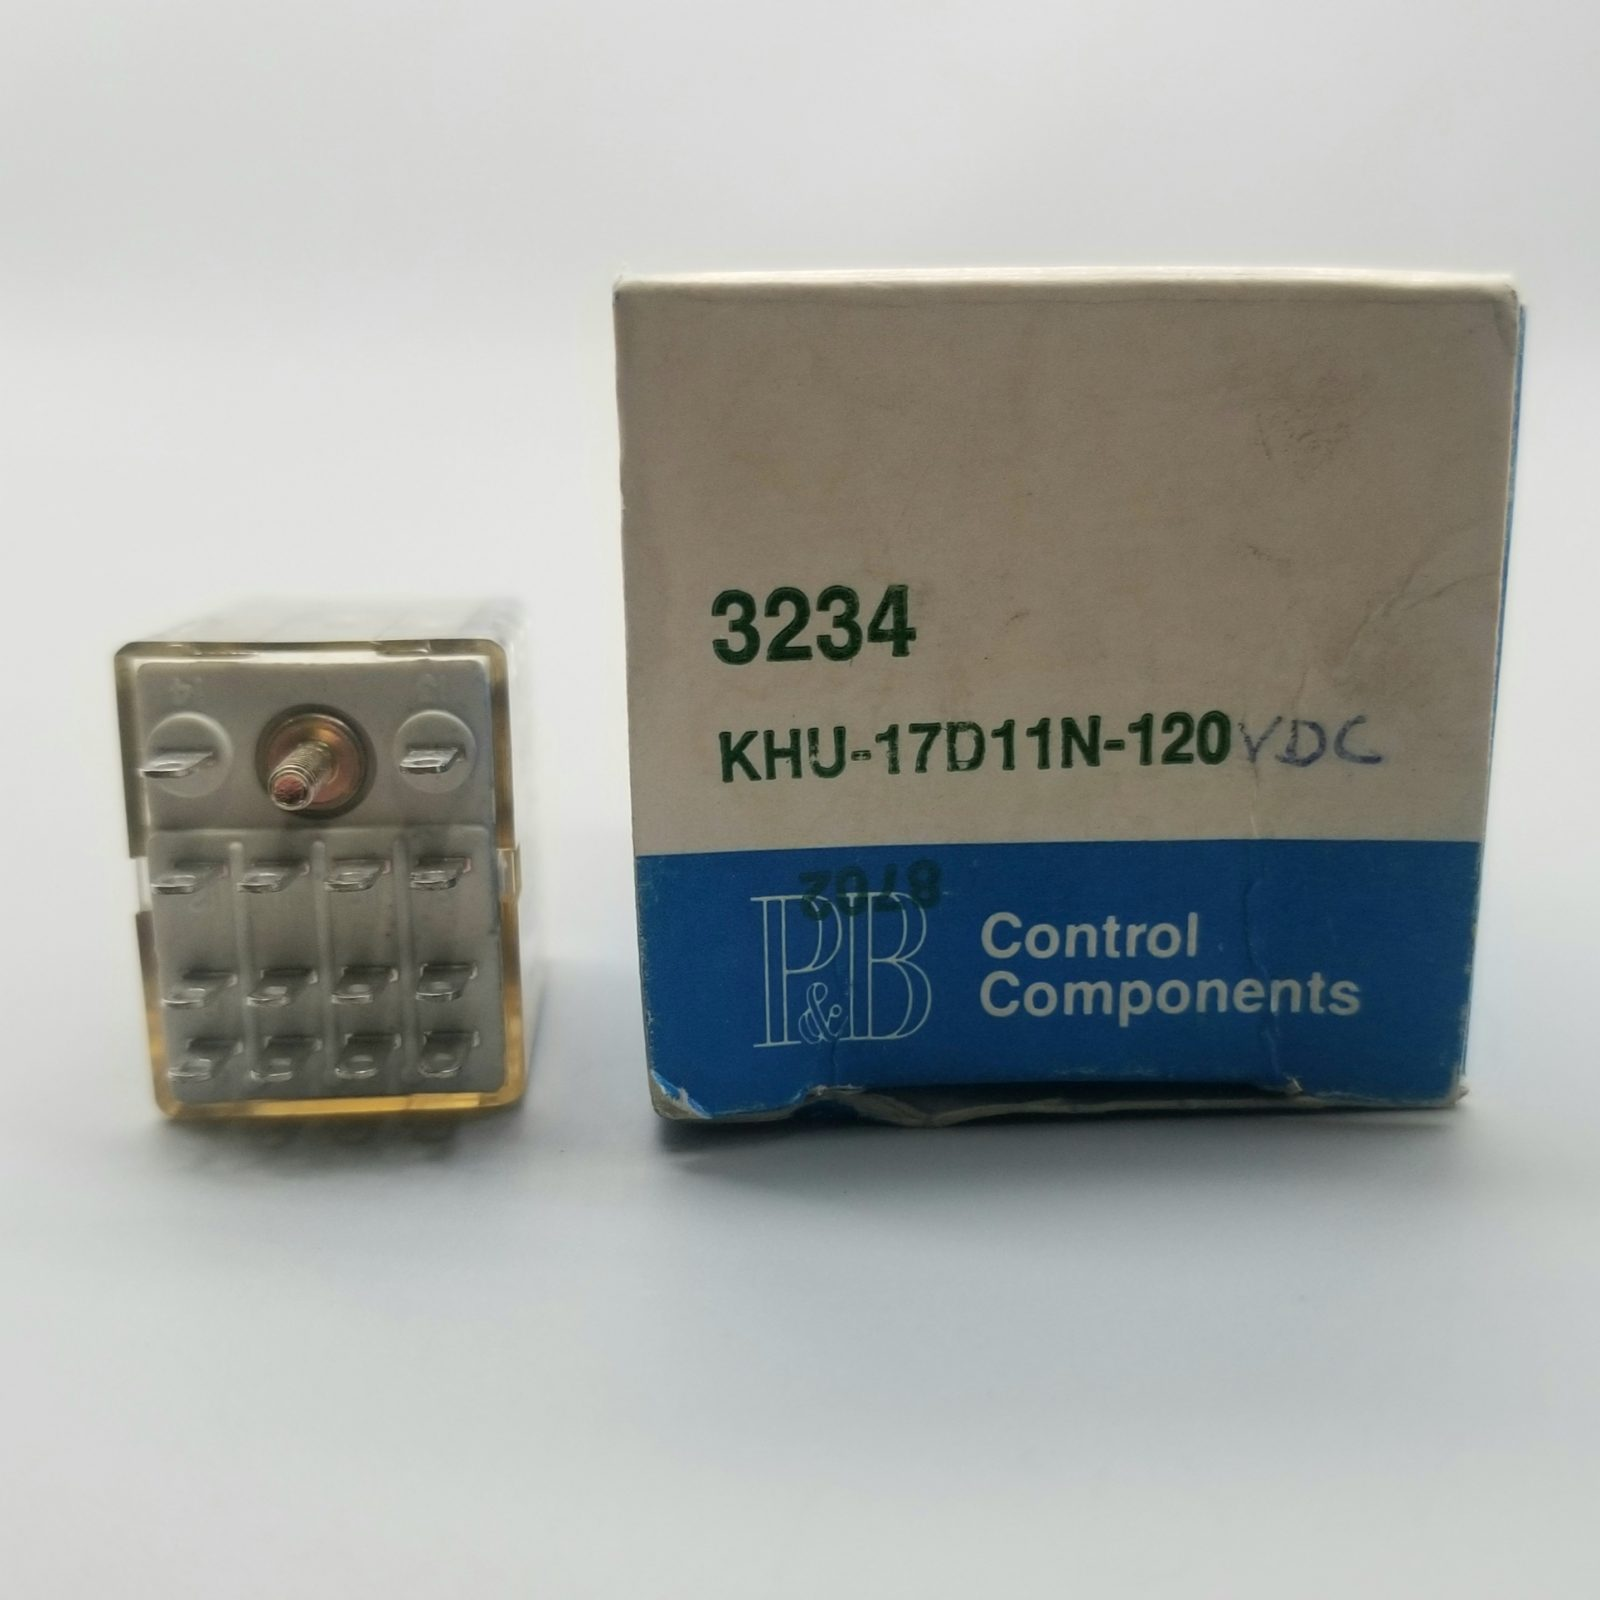 Potter & Brumfield KHU-17D11N-120 VDC Plug In Relay 120-VDC